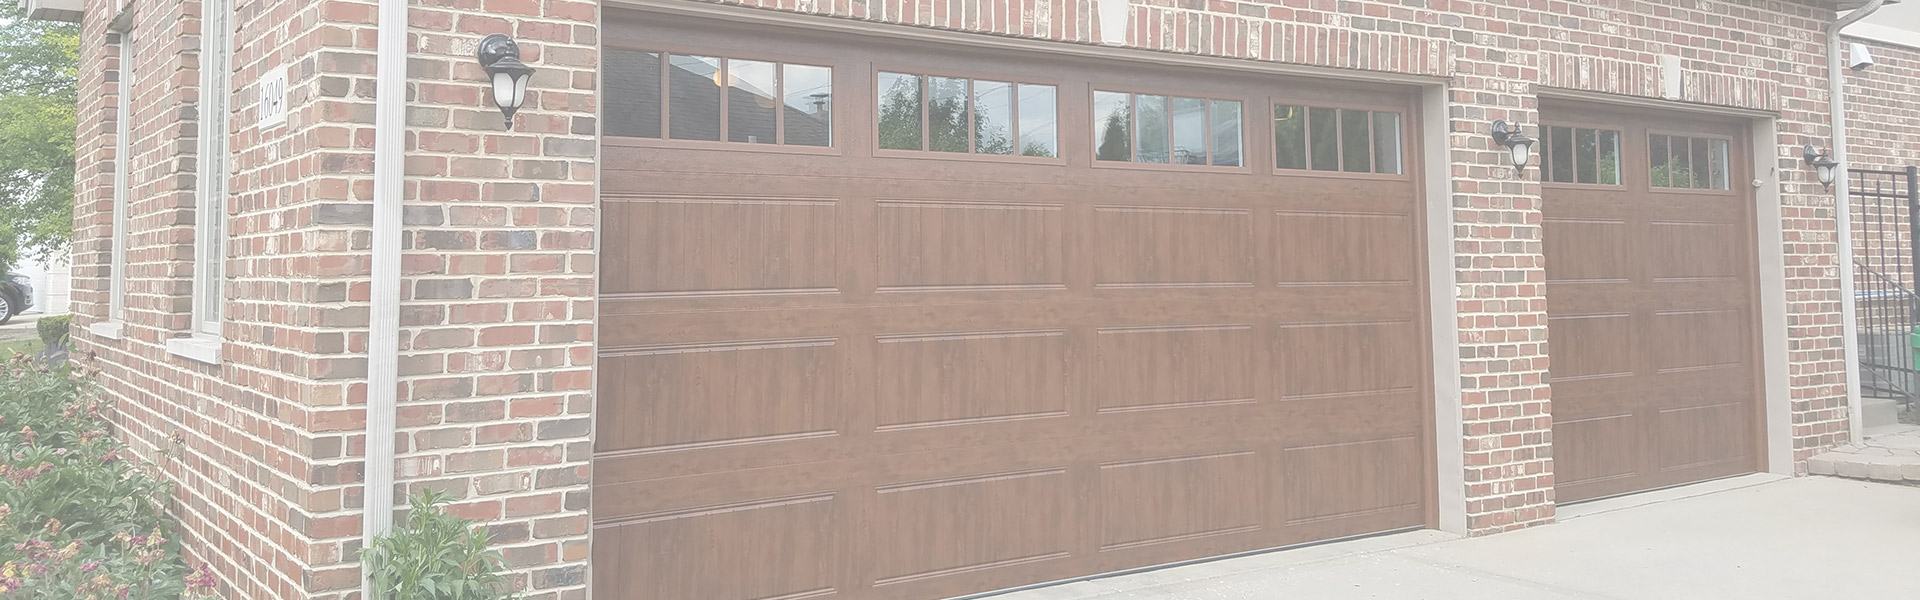 Are You Dealing With A Faulty Garage Door?